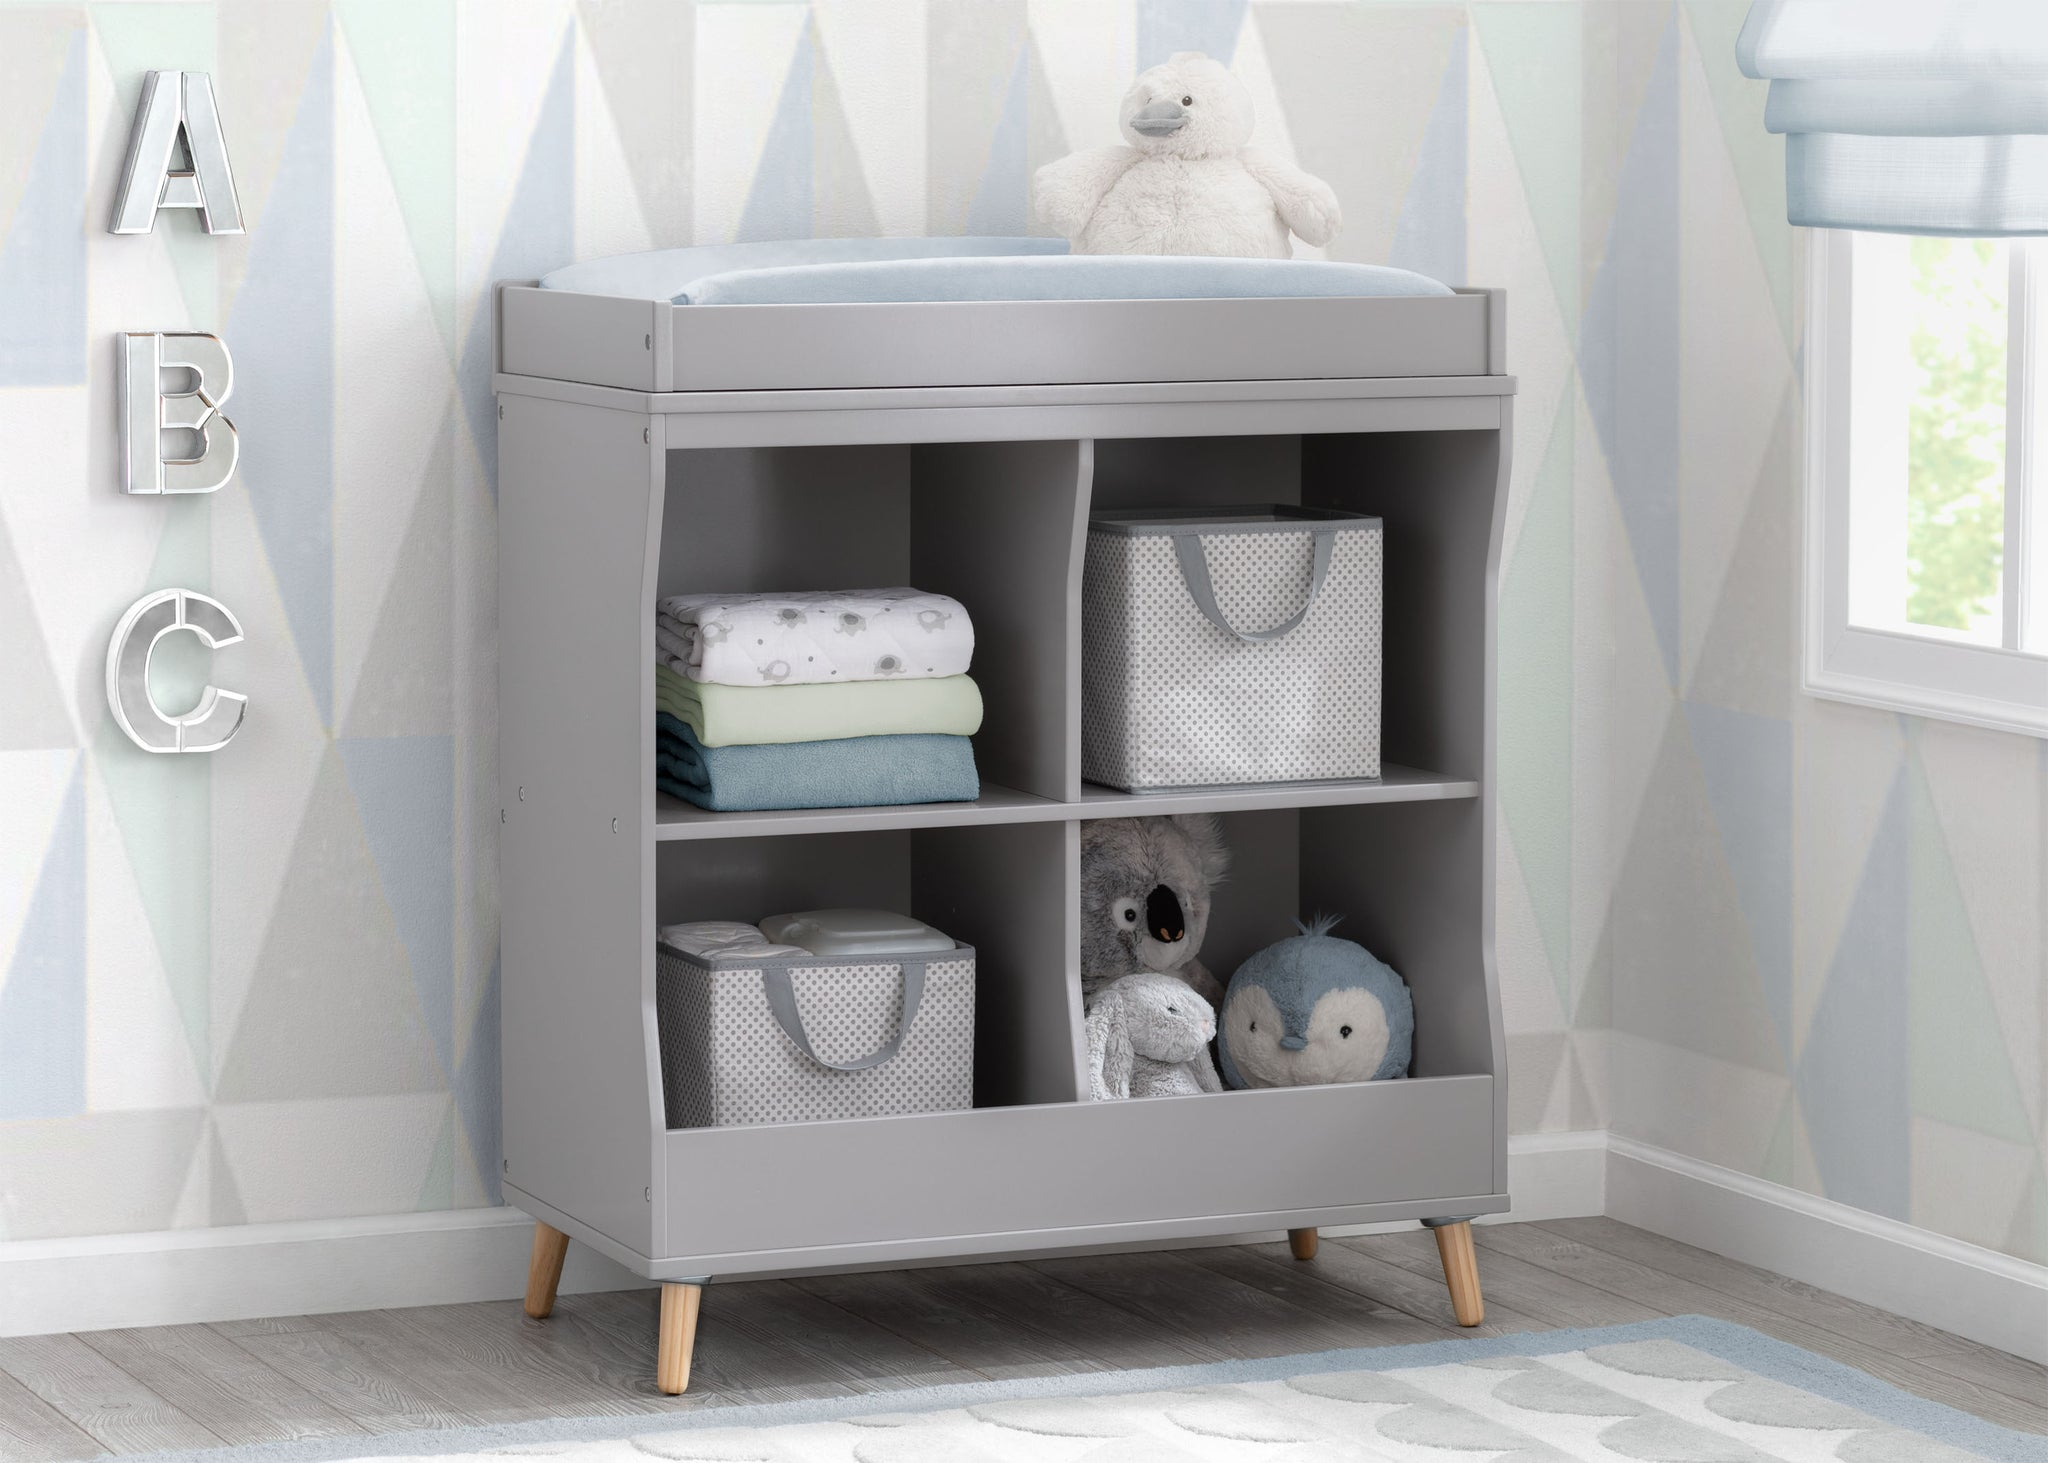 Delta Children Grey (1359) Essex Changing Table/Bookcase, Hangtag View